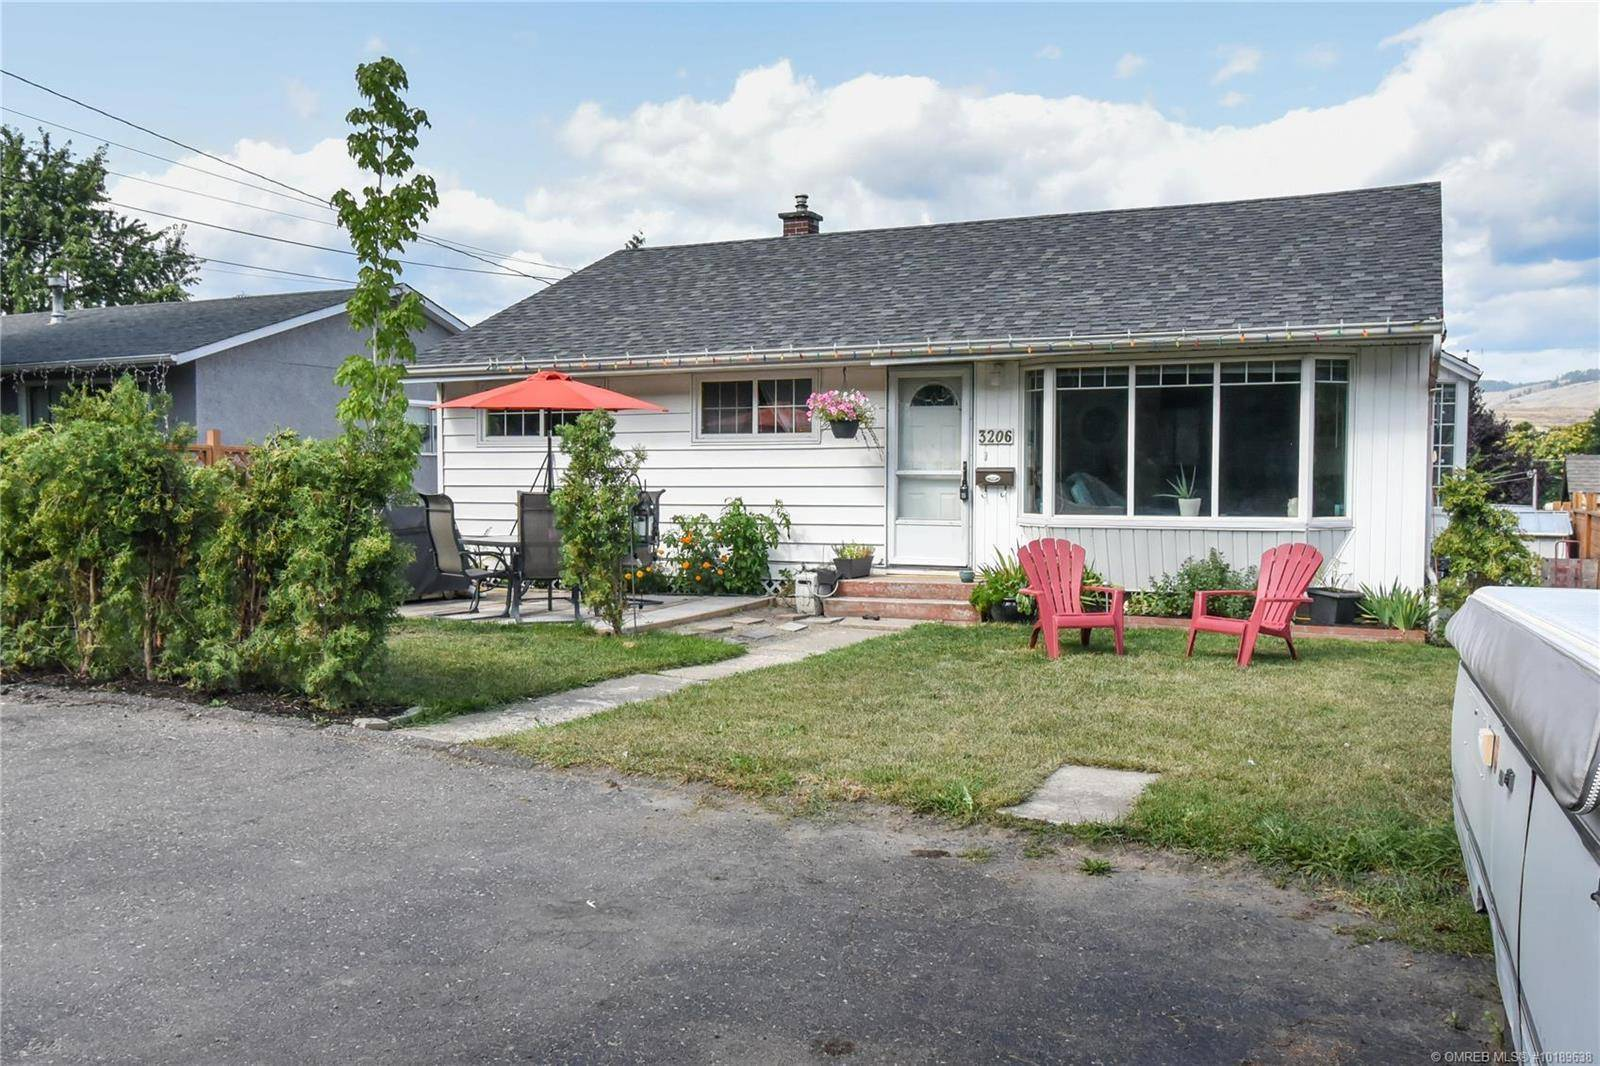 House for sale at 3206 24 St Vernon British Columbia - MLS: 10189638